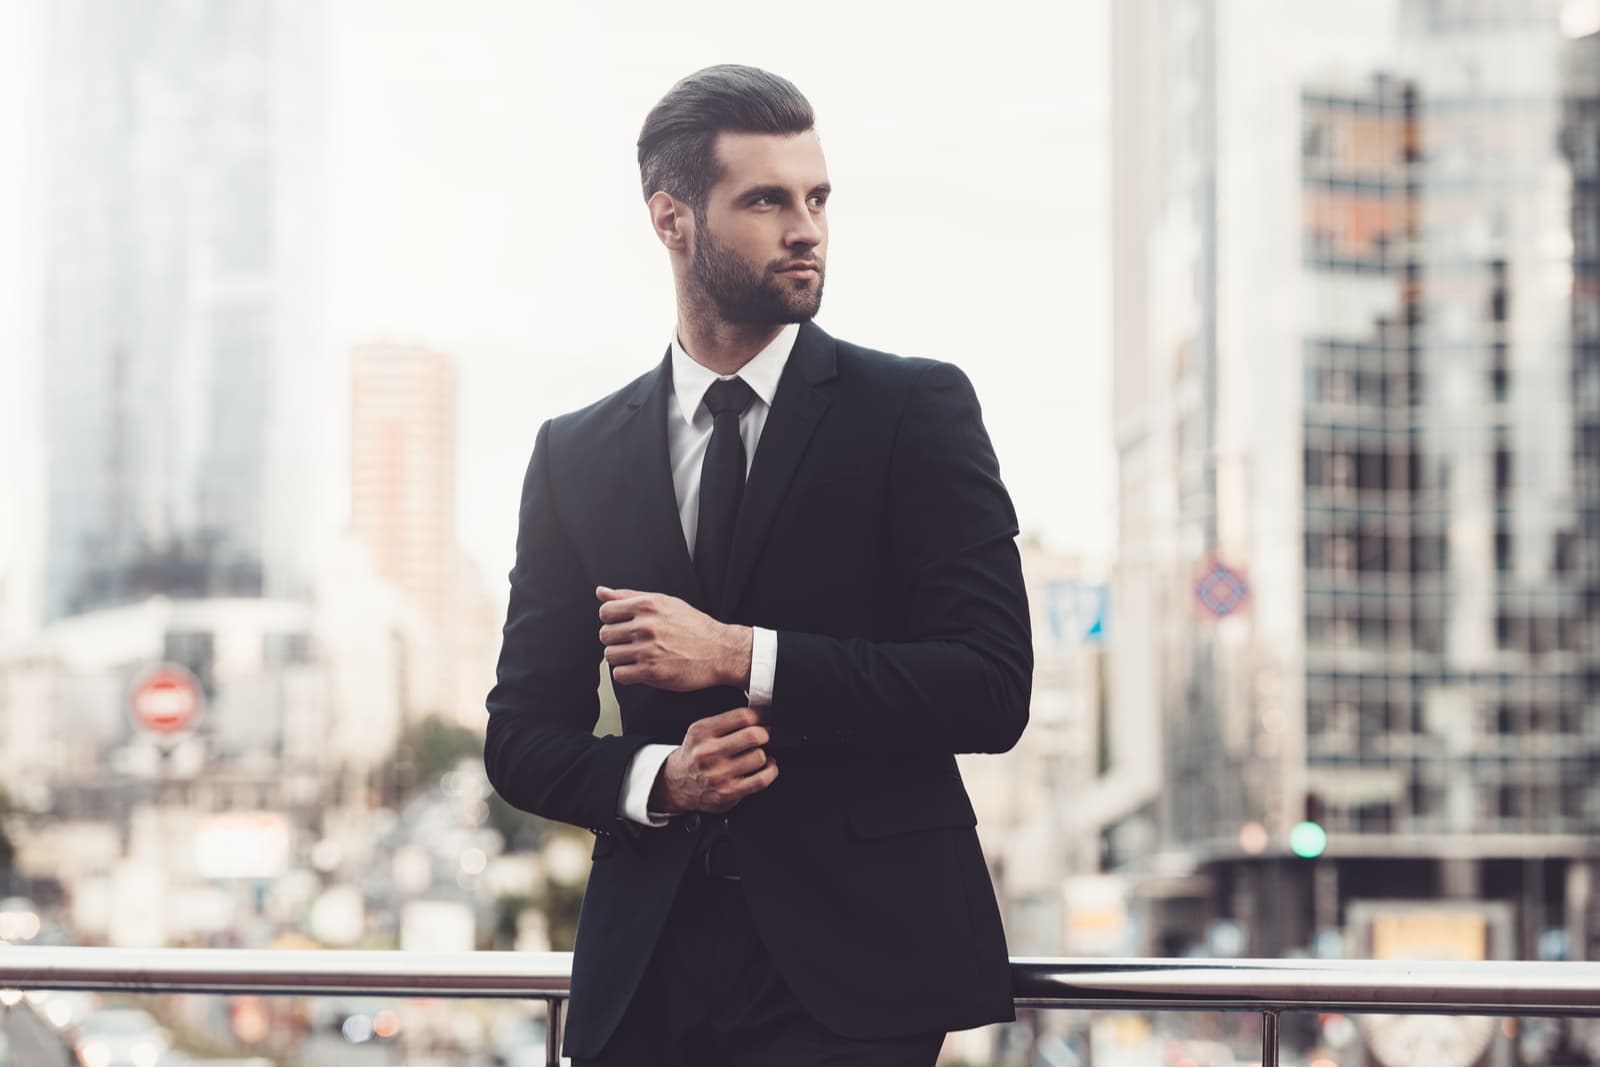 Confident young man in full suit